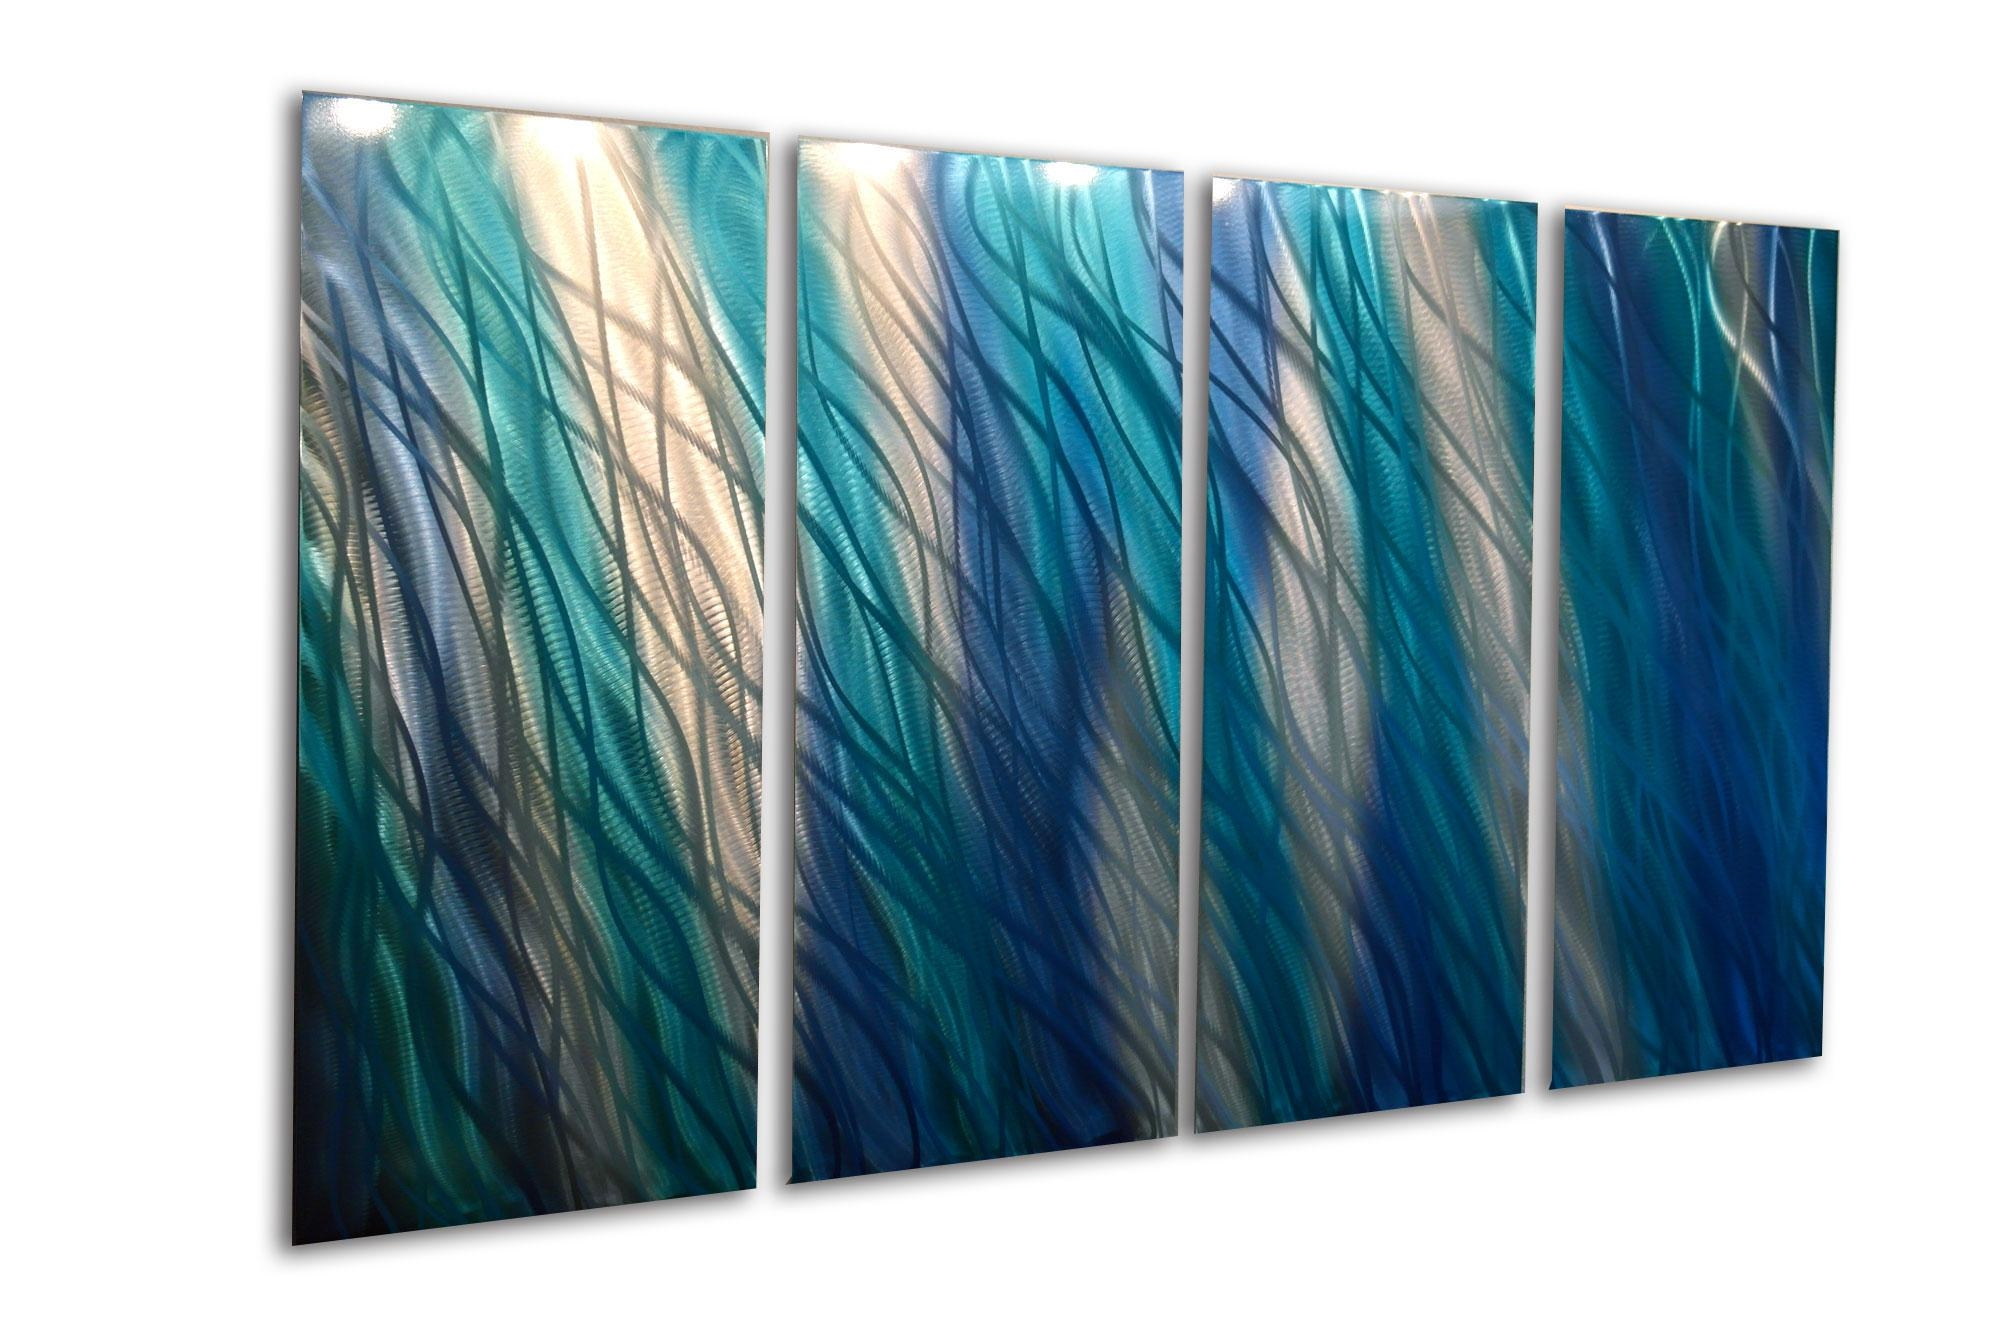 Reef Blue 36X63 - Metal Wall Art Abstract Sculpture Modern Decor with Blue and White Wall Art